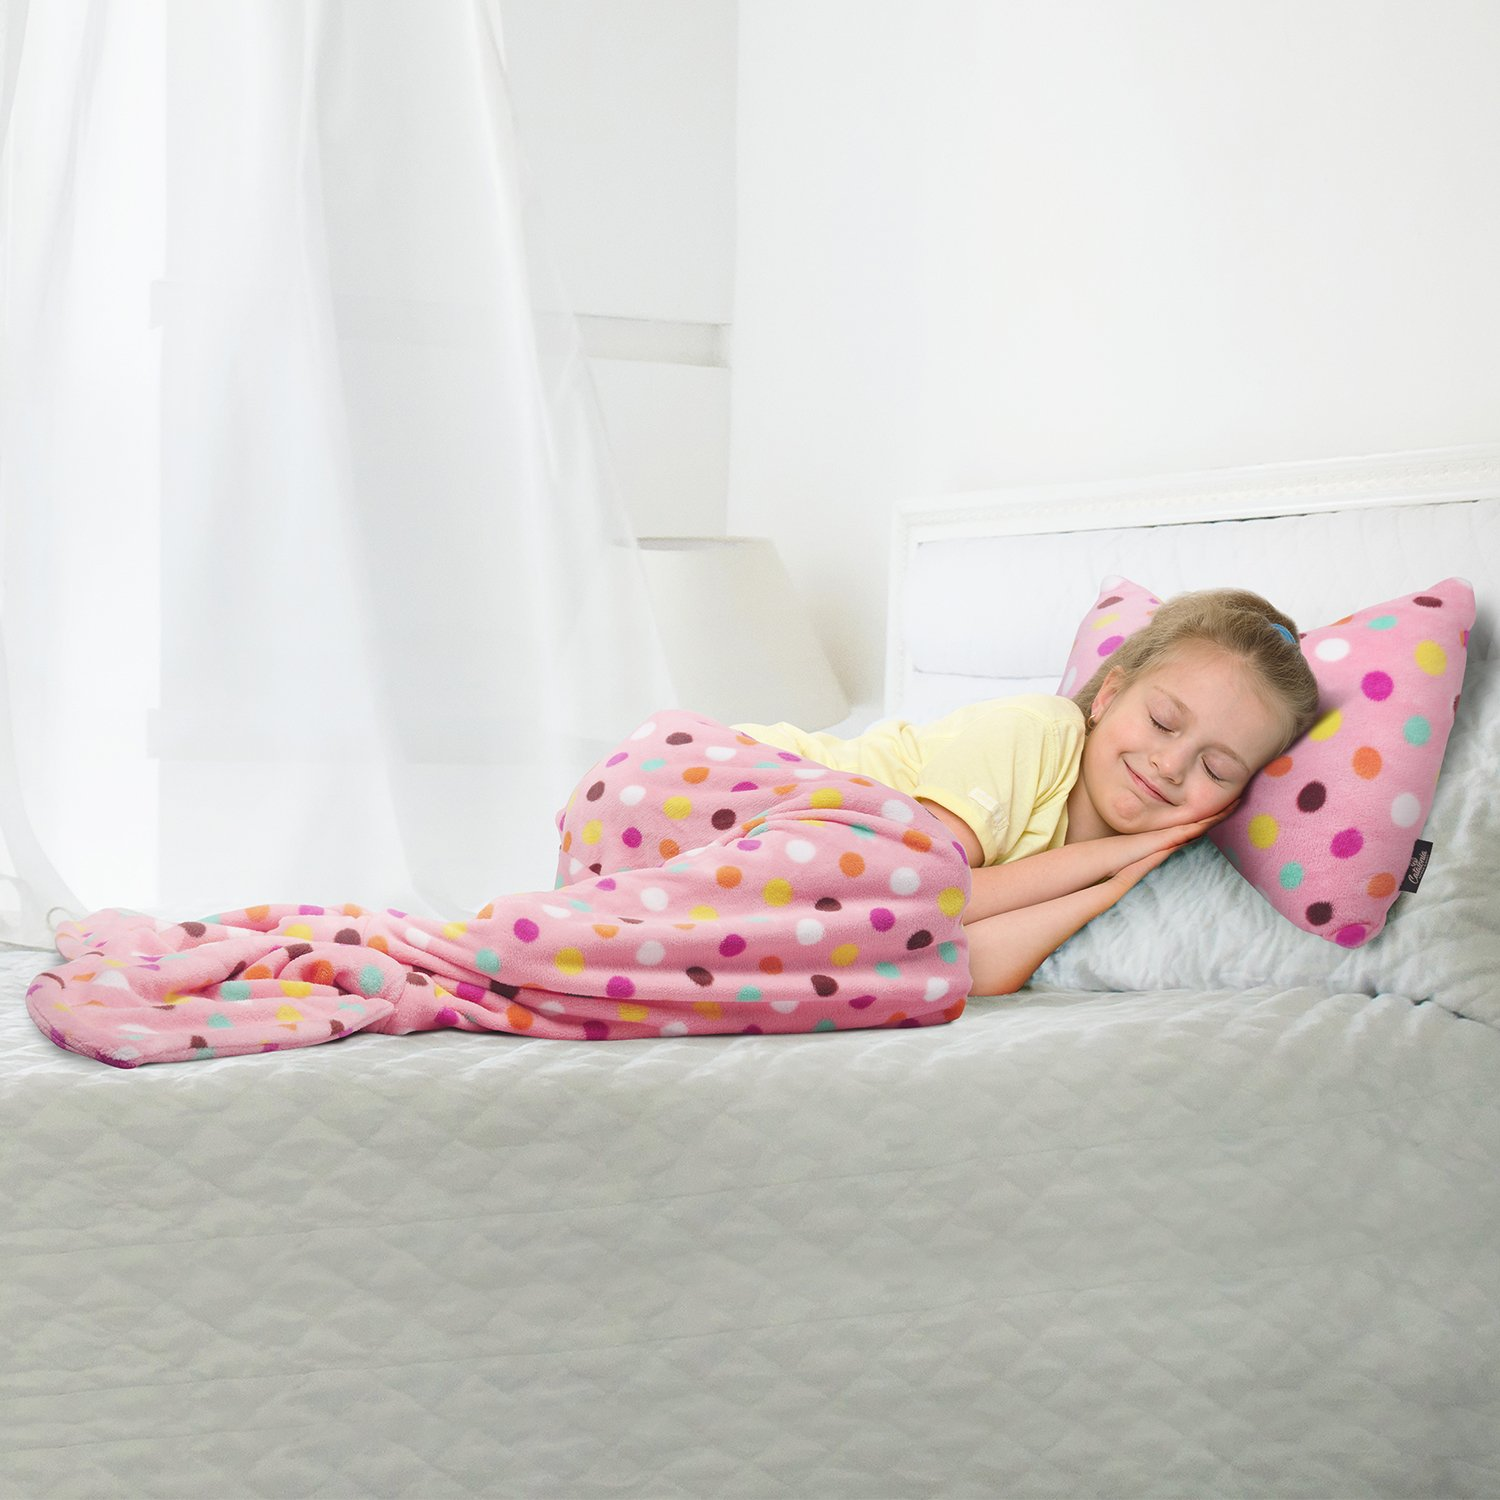 Mermaid Tail Blanket - Super Soft Fannel Fleece Snuggle Sleeping Bag Mermaid Blanket Set for Kids Teens Toddlers Ages 3-12, Bowknot Pillow Included, Catalonia series by Tirrinia, Pink